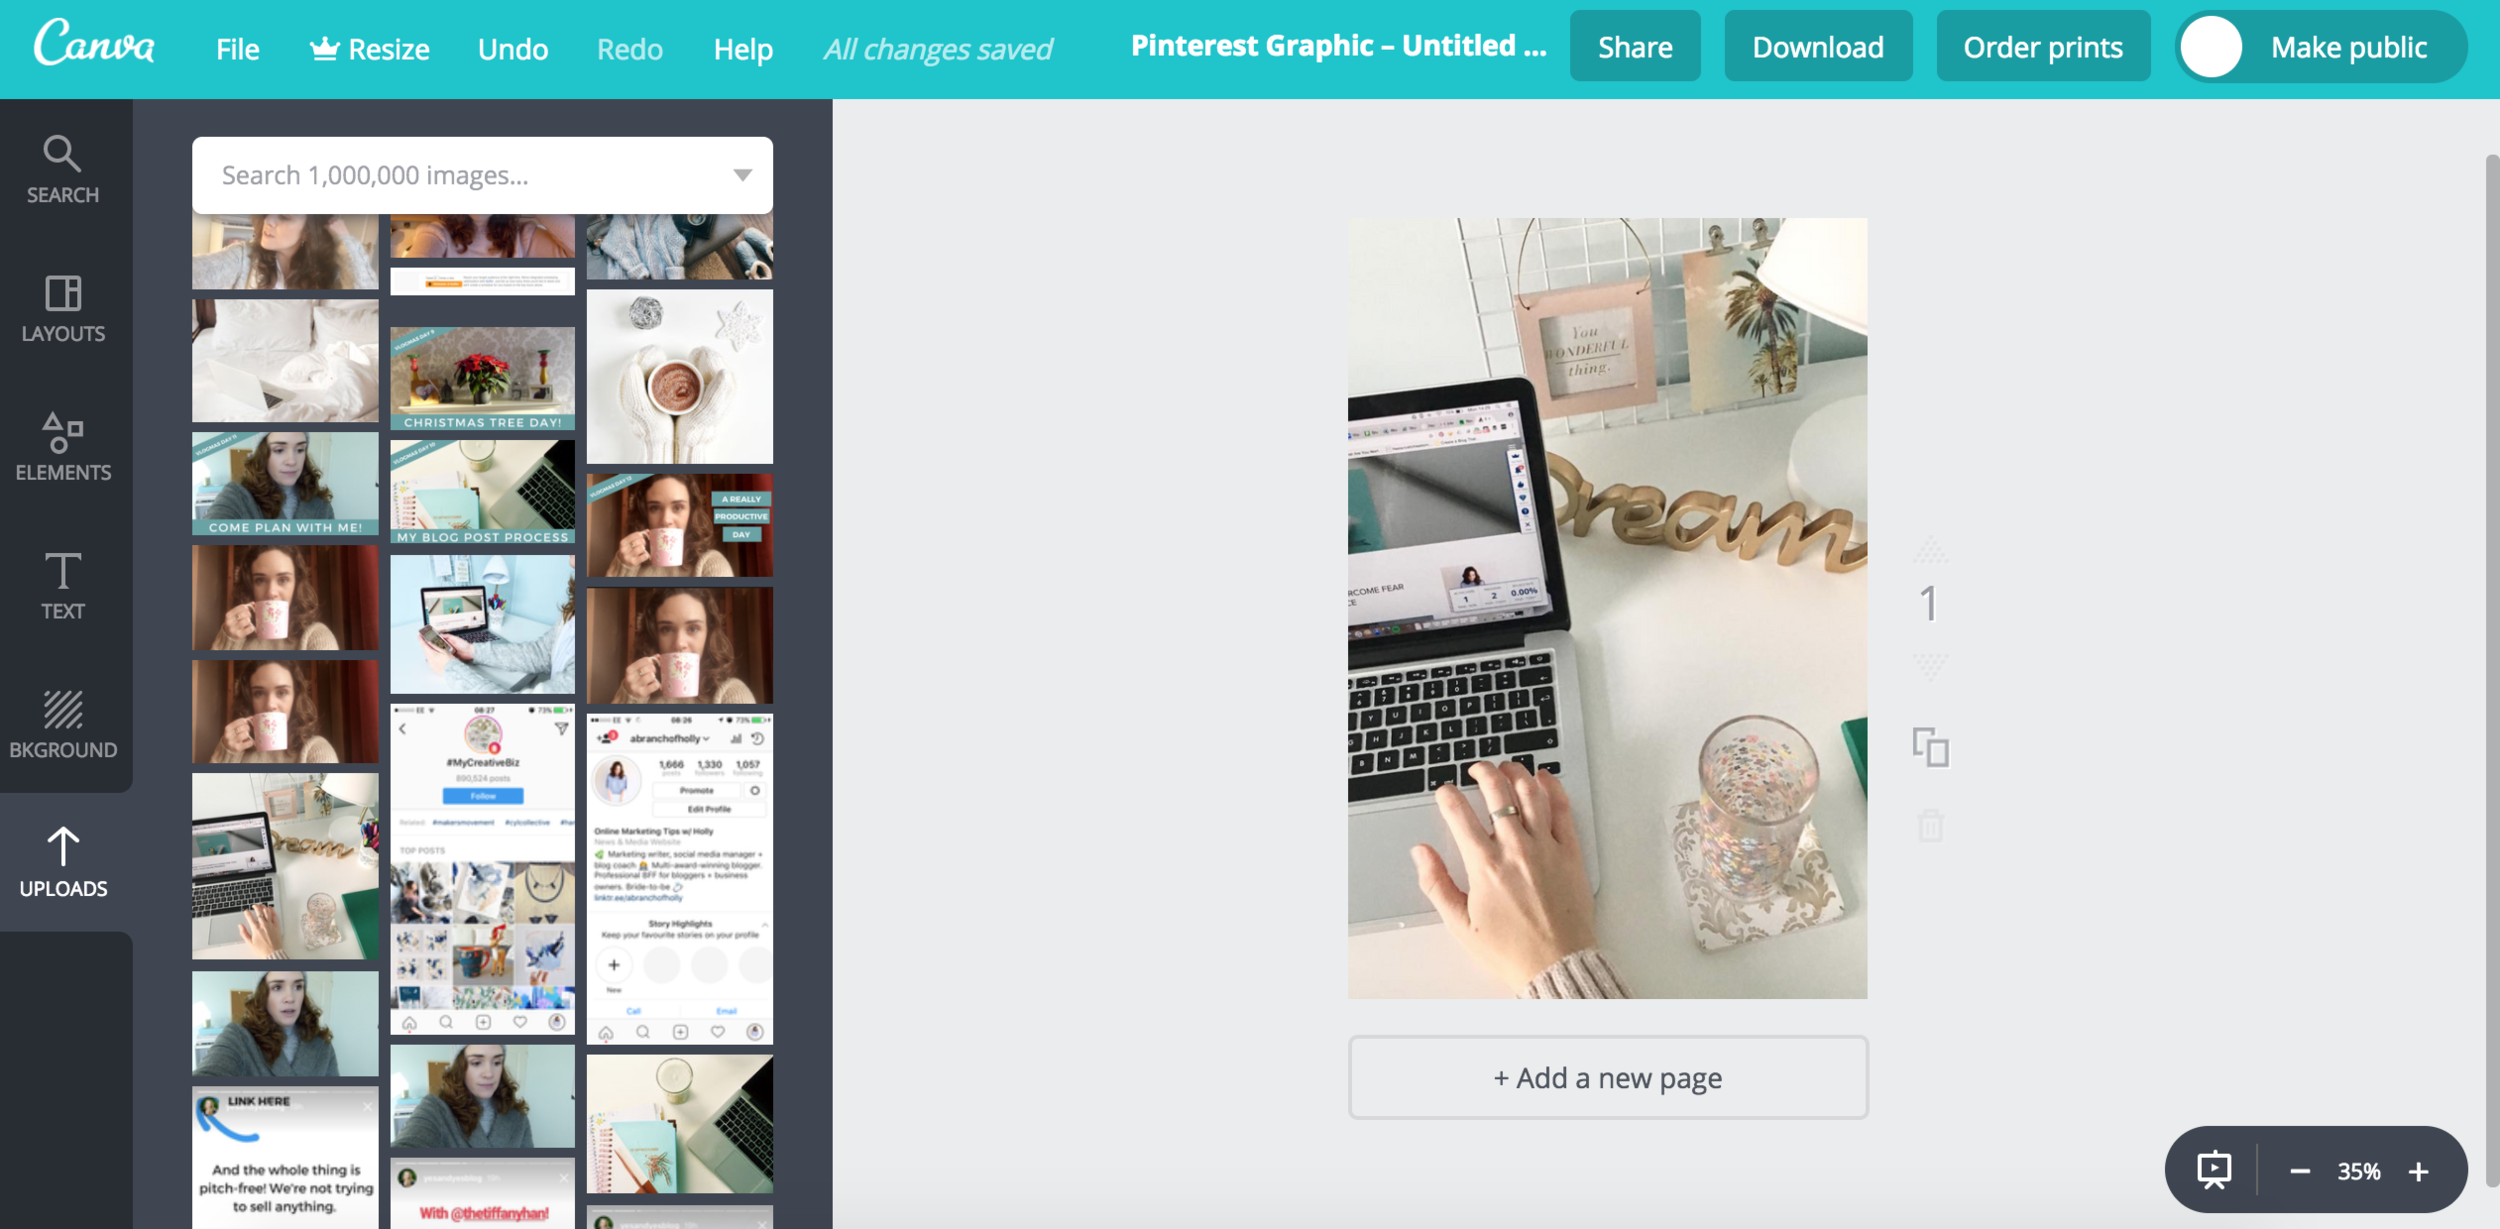 how to blog - create a pinnable image in canva